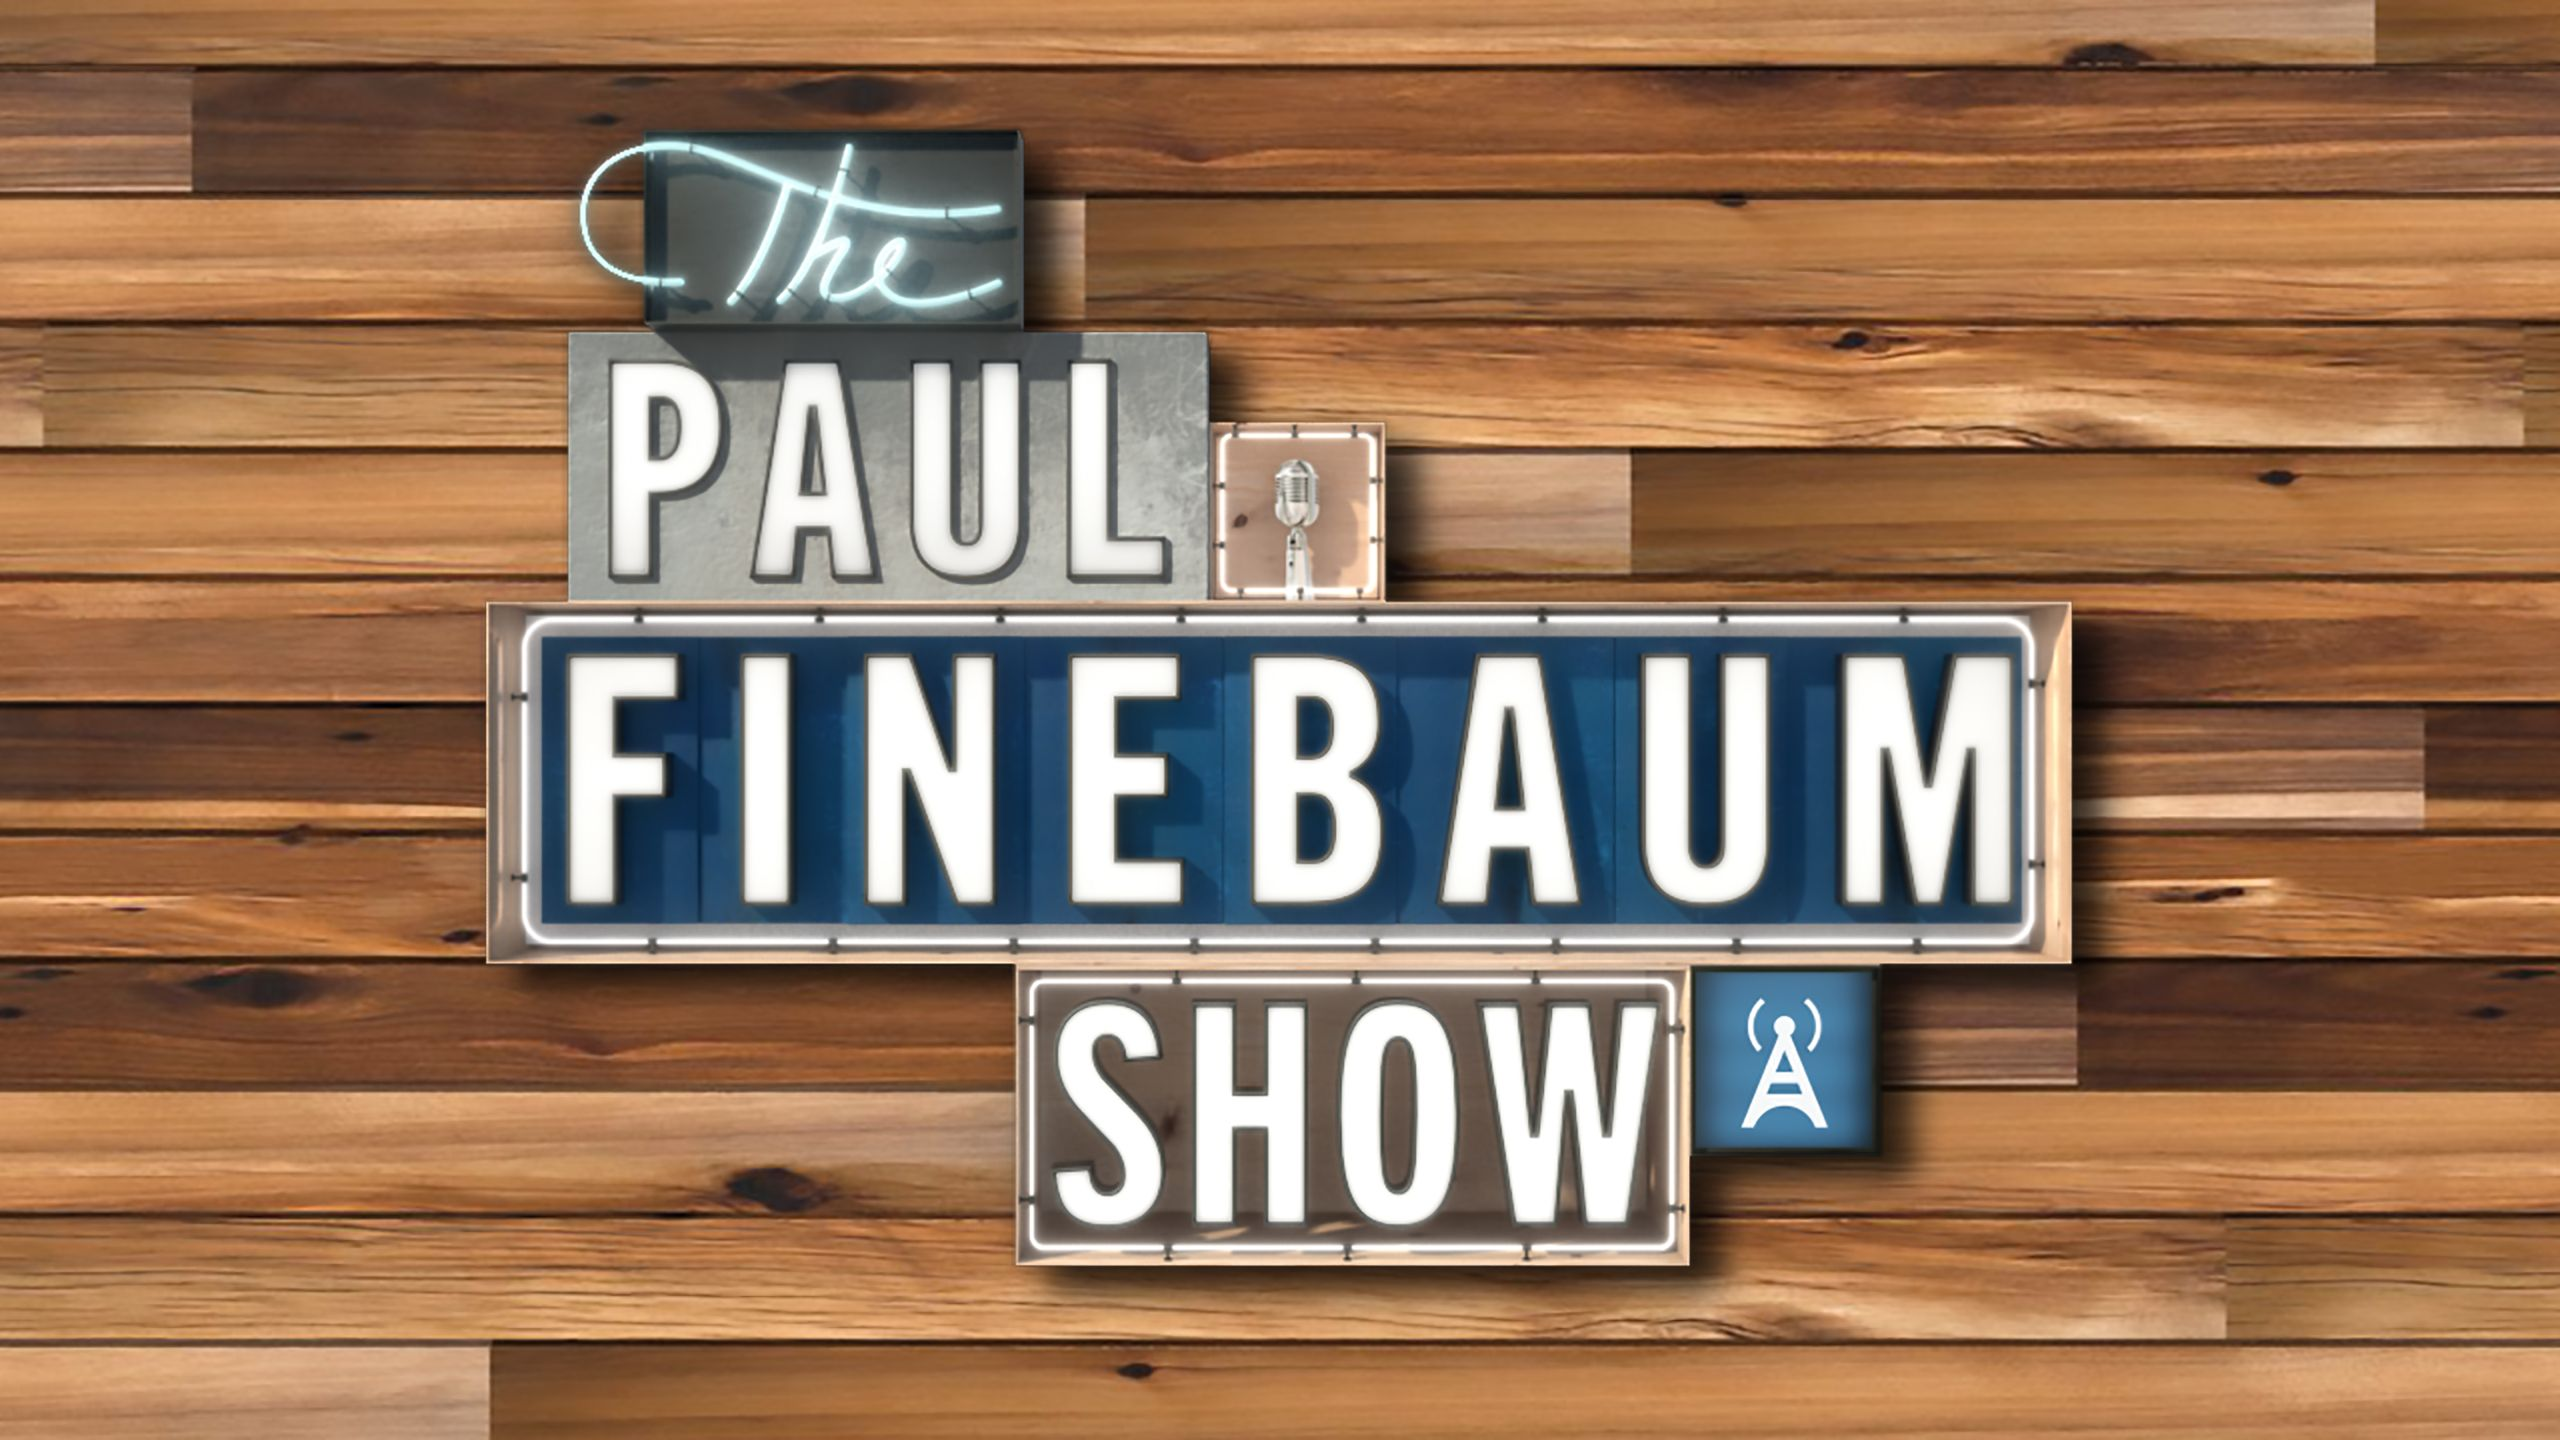 Fri, 10/20 - The Paul Finebaum Show